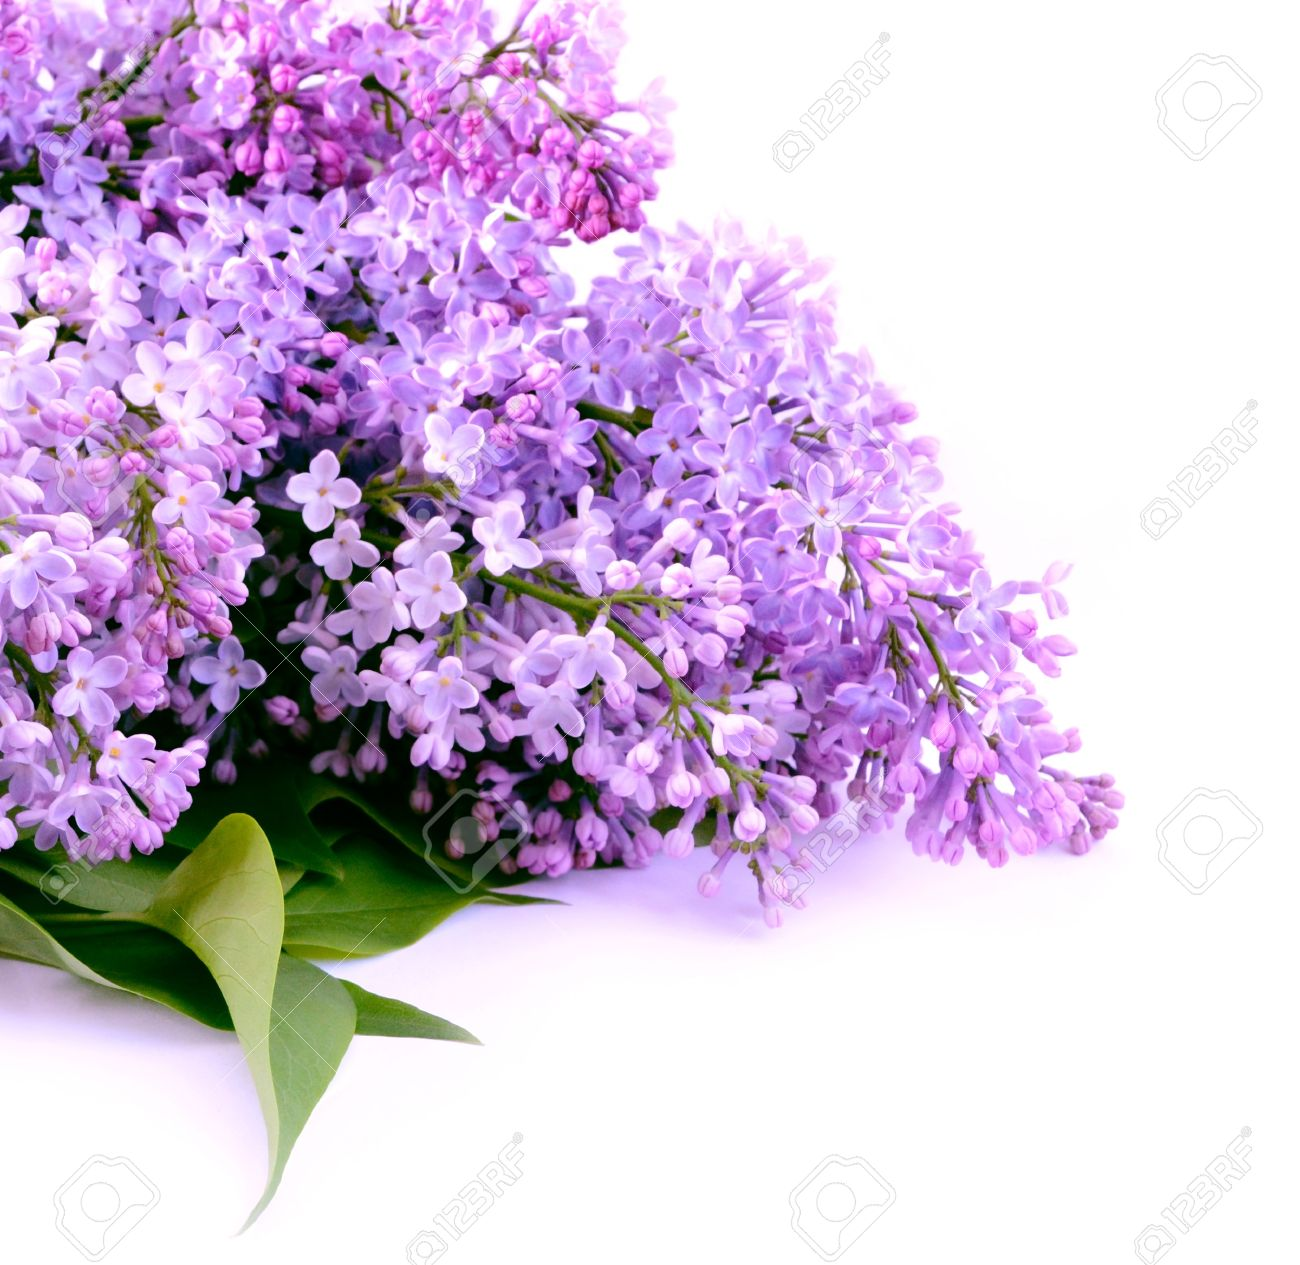 Bouquet lilac blossom on white background - 13623226